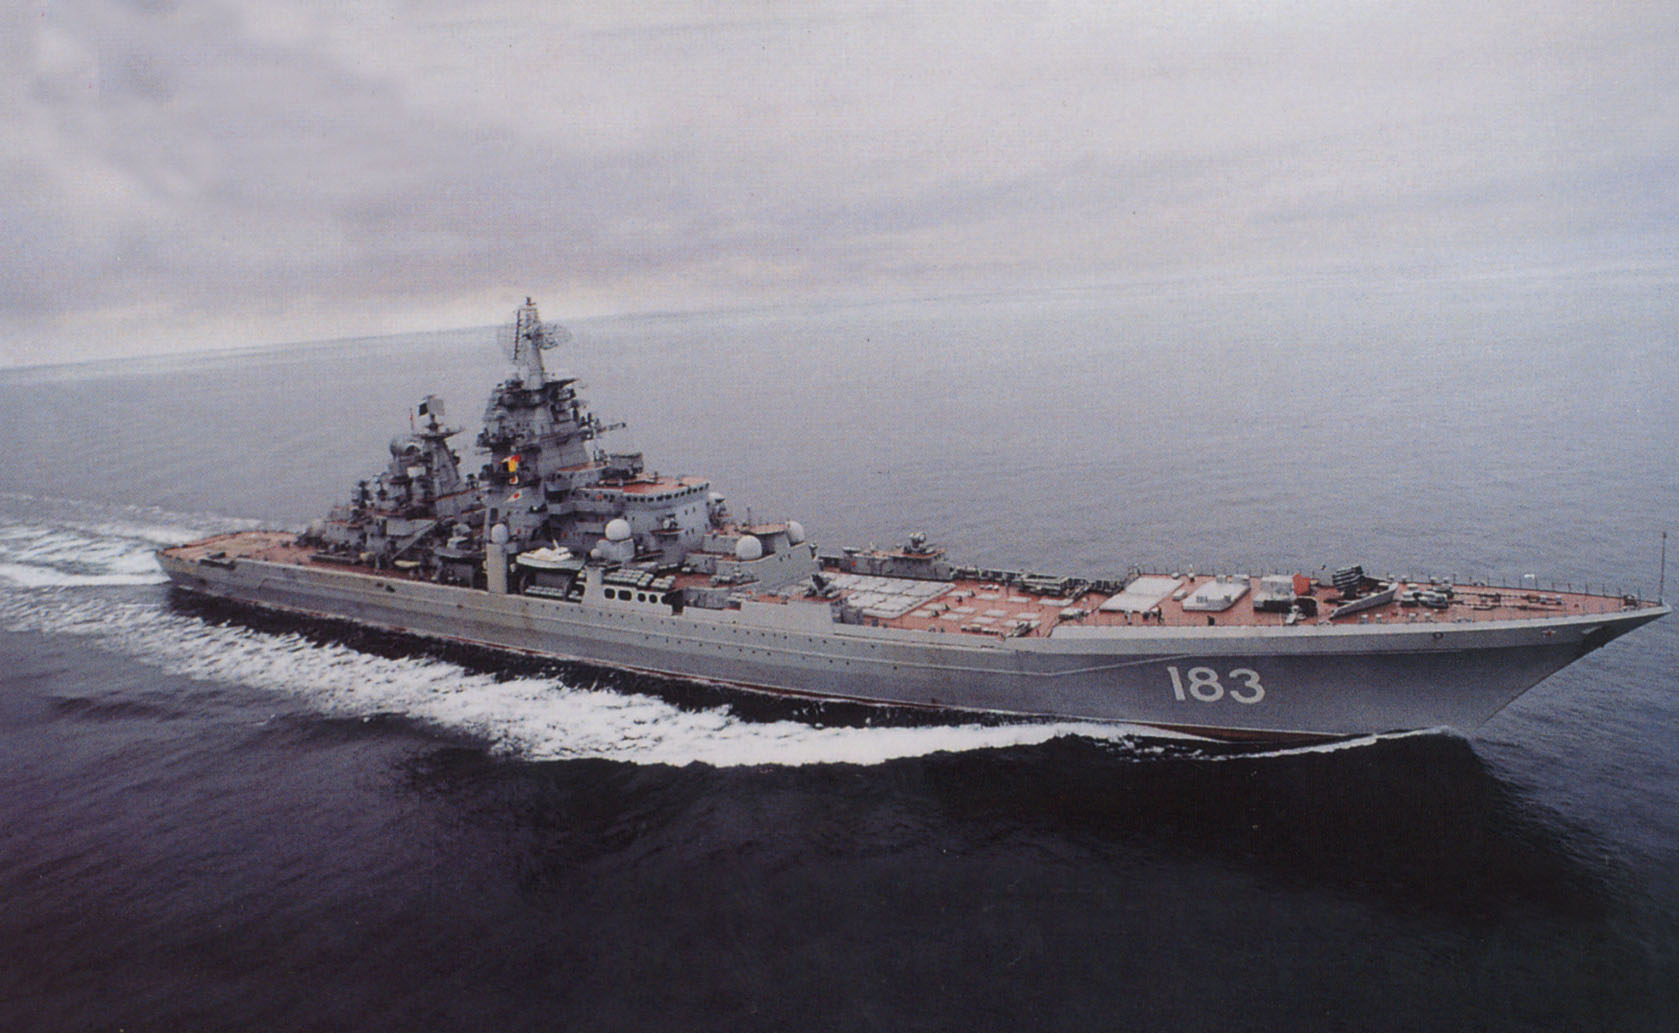 http://luizcore.files.wordpress.com/2008/09/rfs-pyotr-velikiy-tapk-183-in-1997.jpg